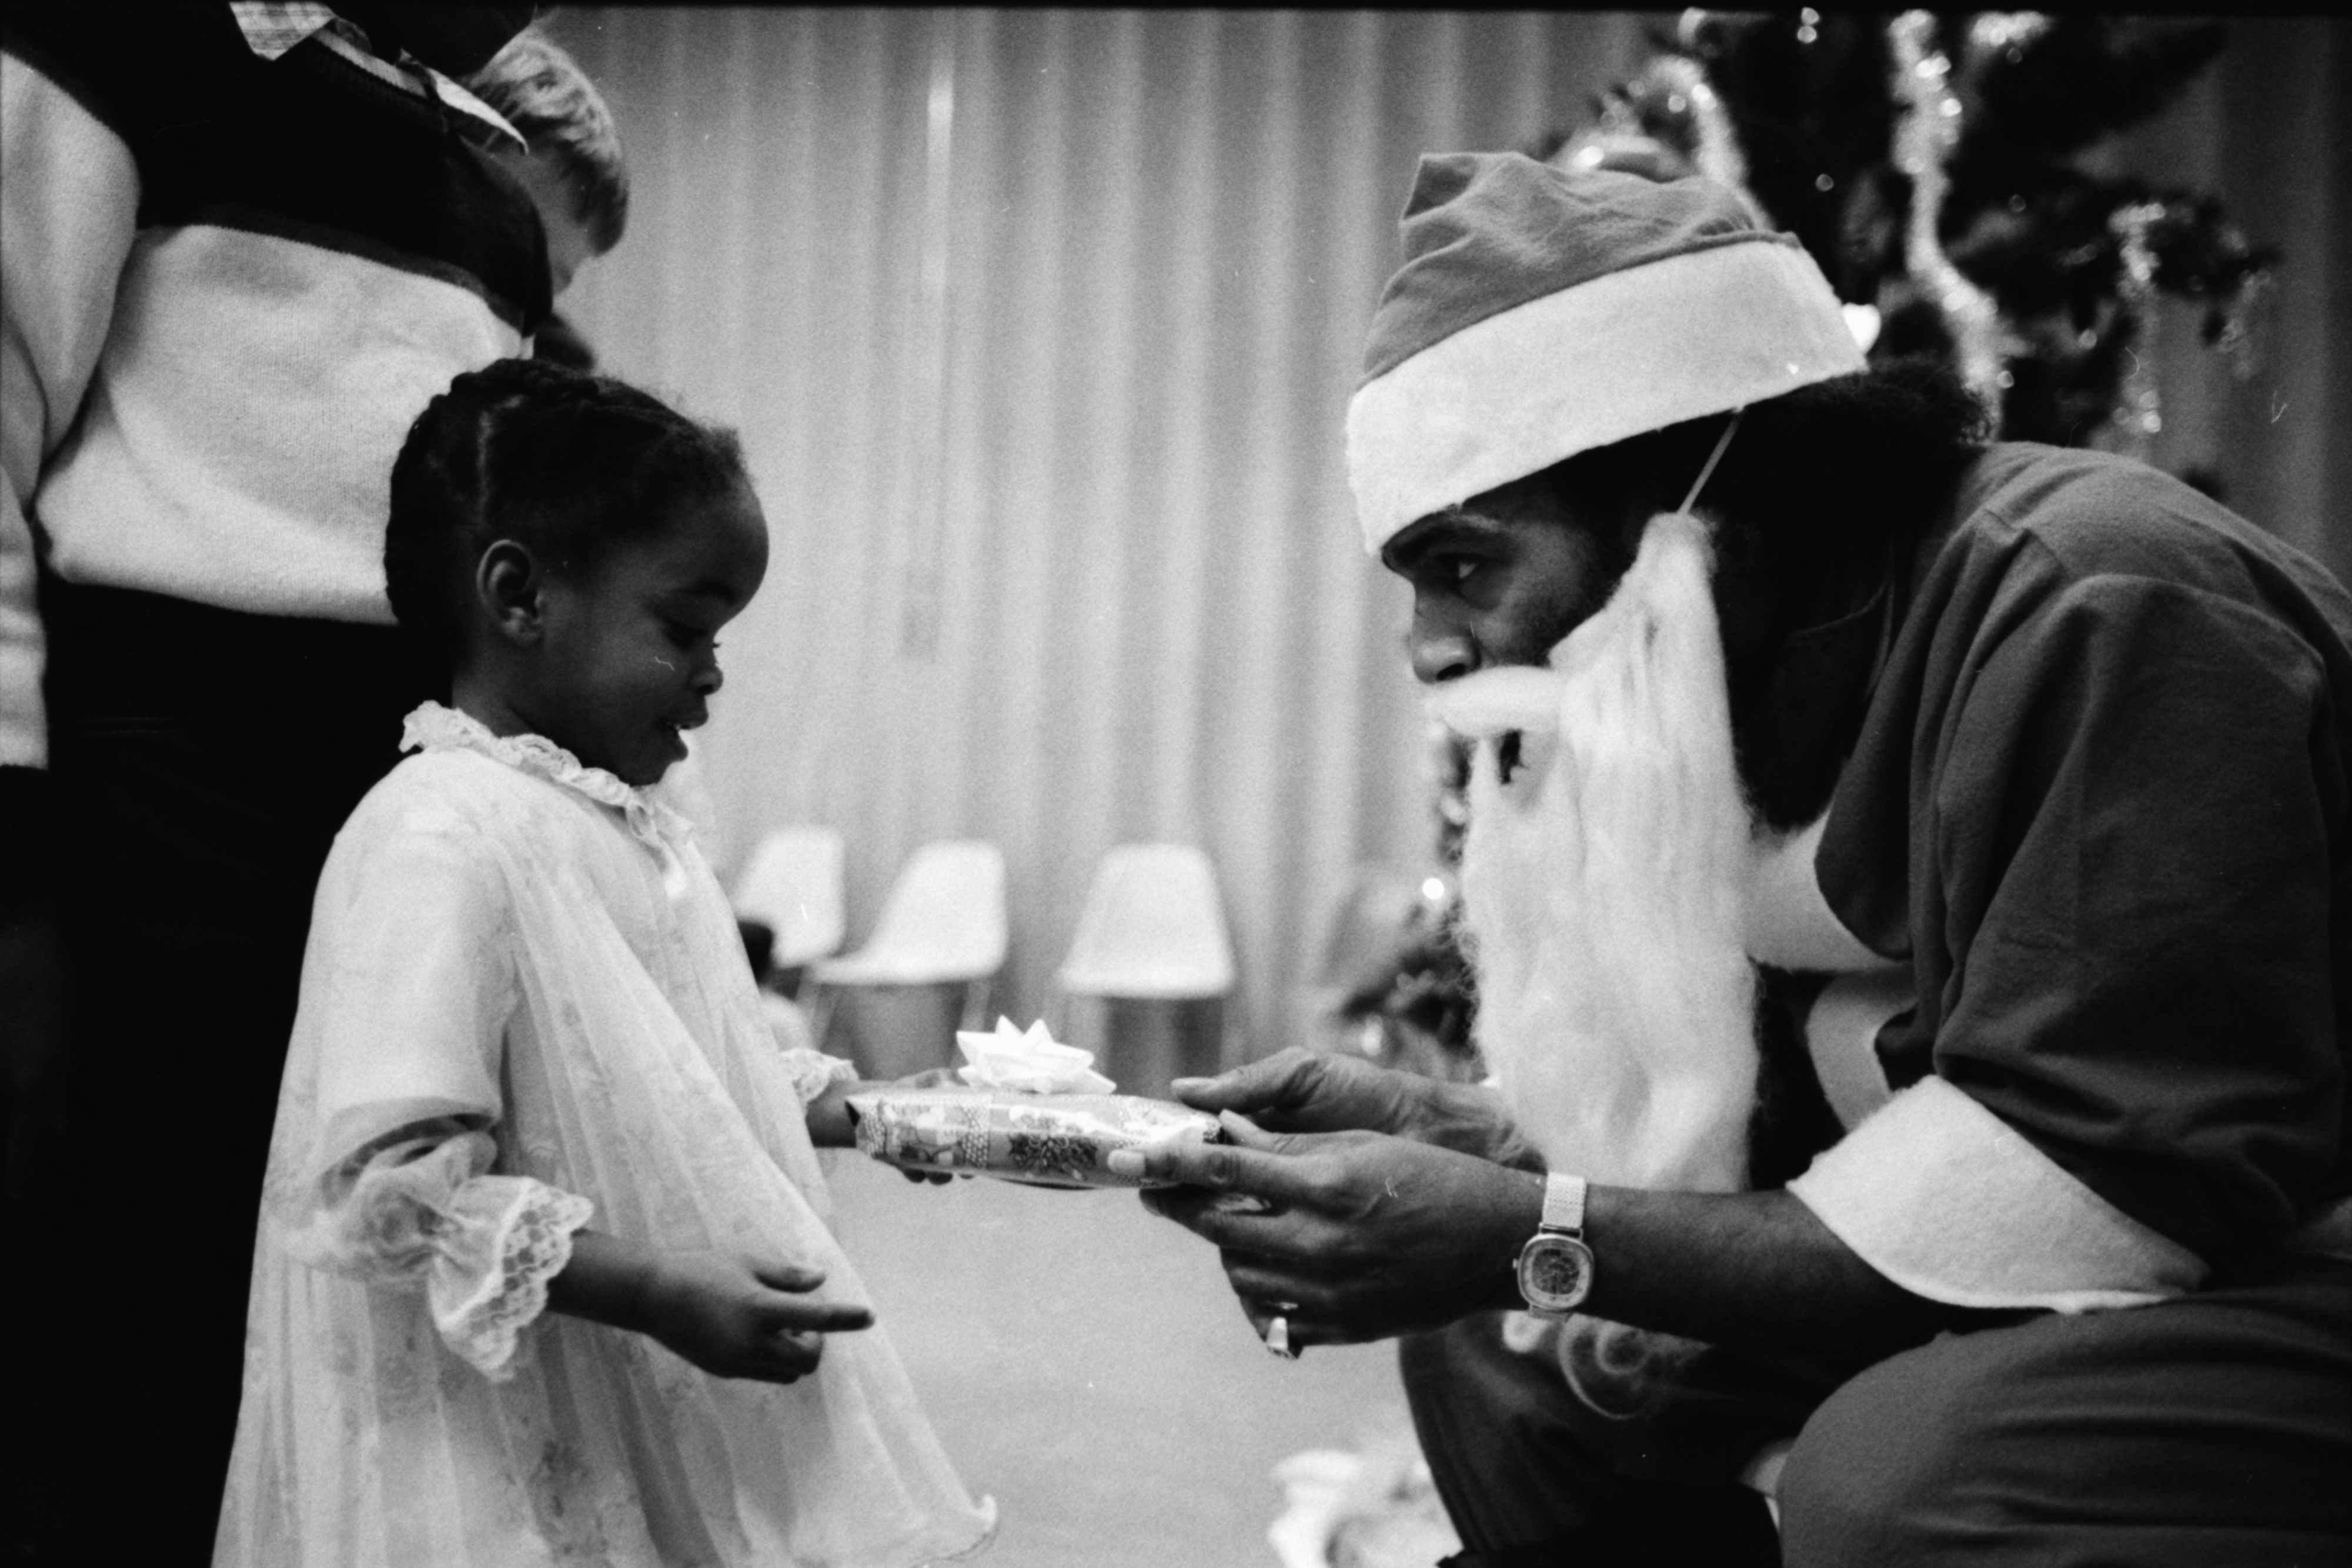 Josephine Smith gets a gift at the Ann Arbor Community Center, December 1982 image